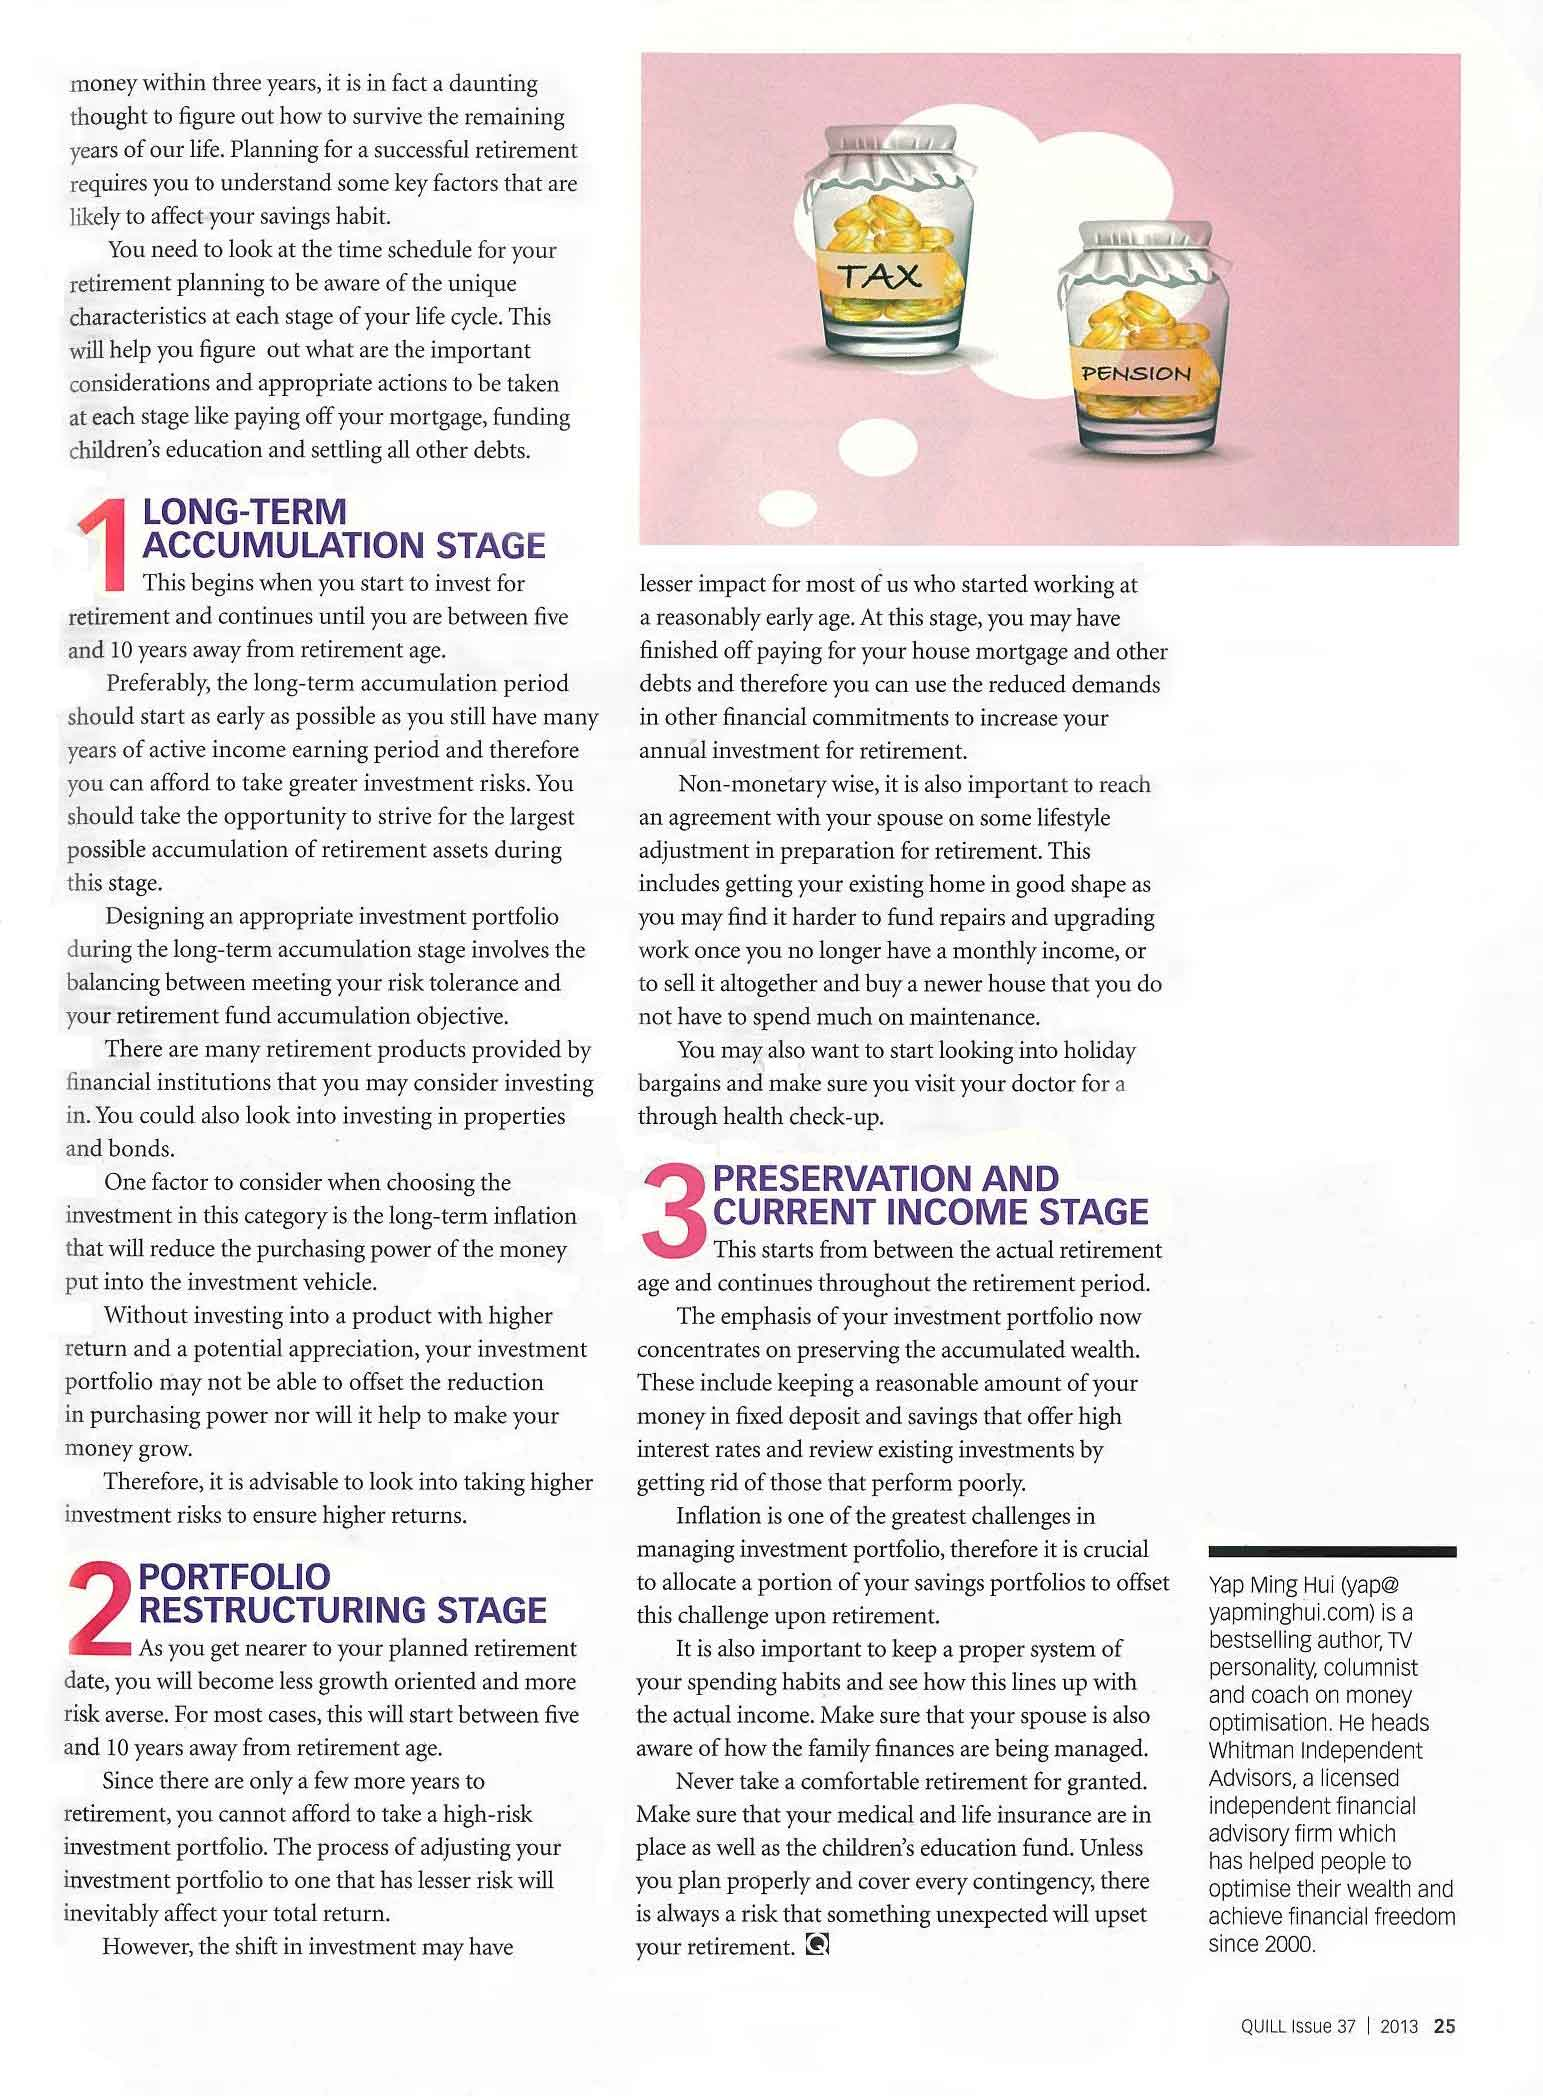 Start Saving for Retirement Now_part 2 - 01 Apr 2013